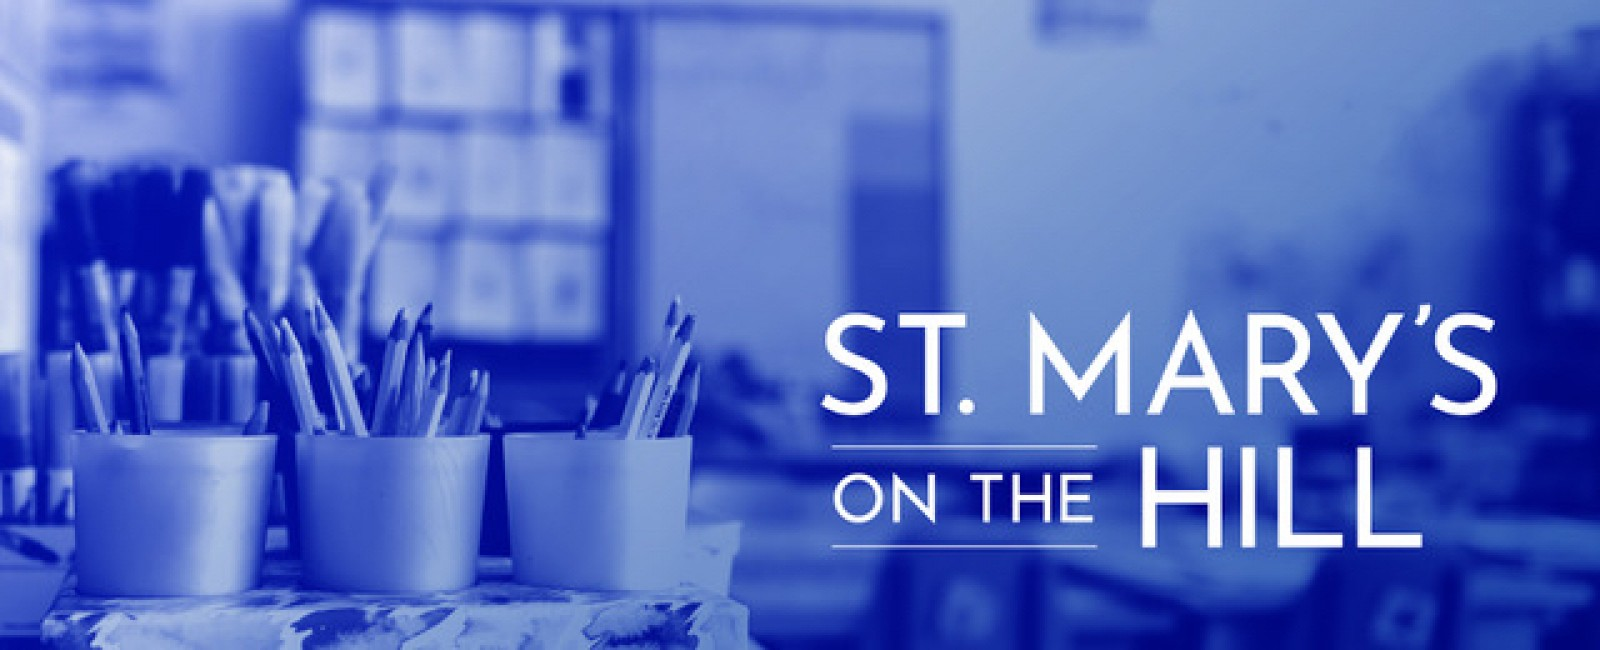 St. Mary's on the Hill Digital Case Study